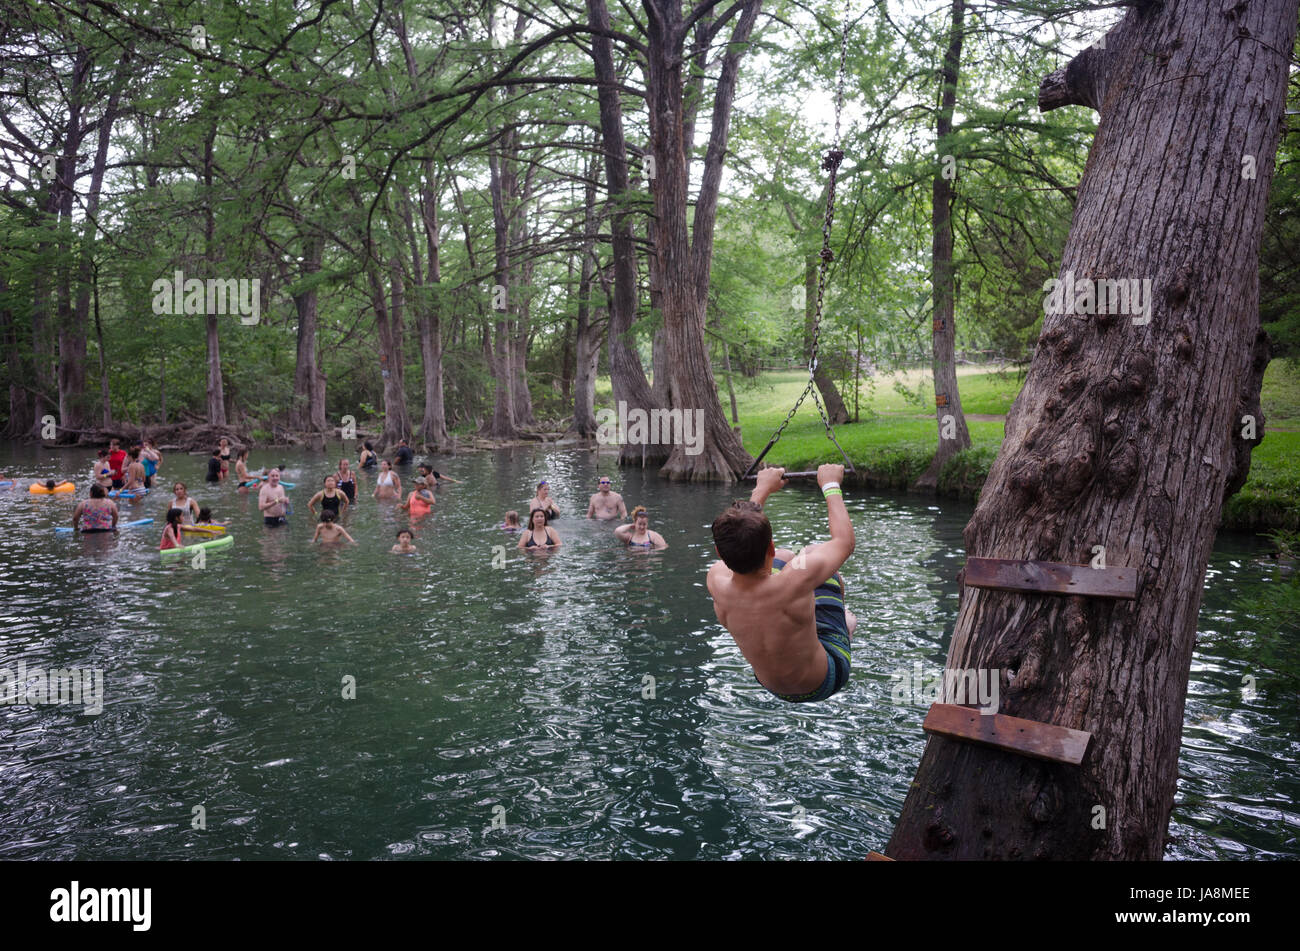 Swimmers at Blue Hole Regional Park in Wimberley, Texas - Stock Image